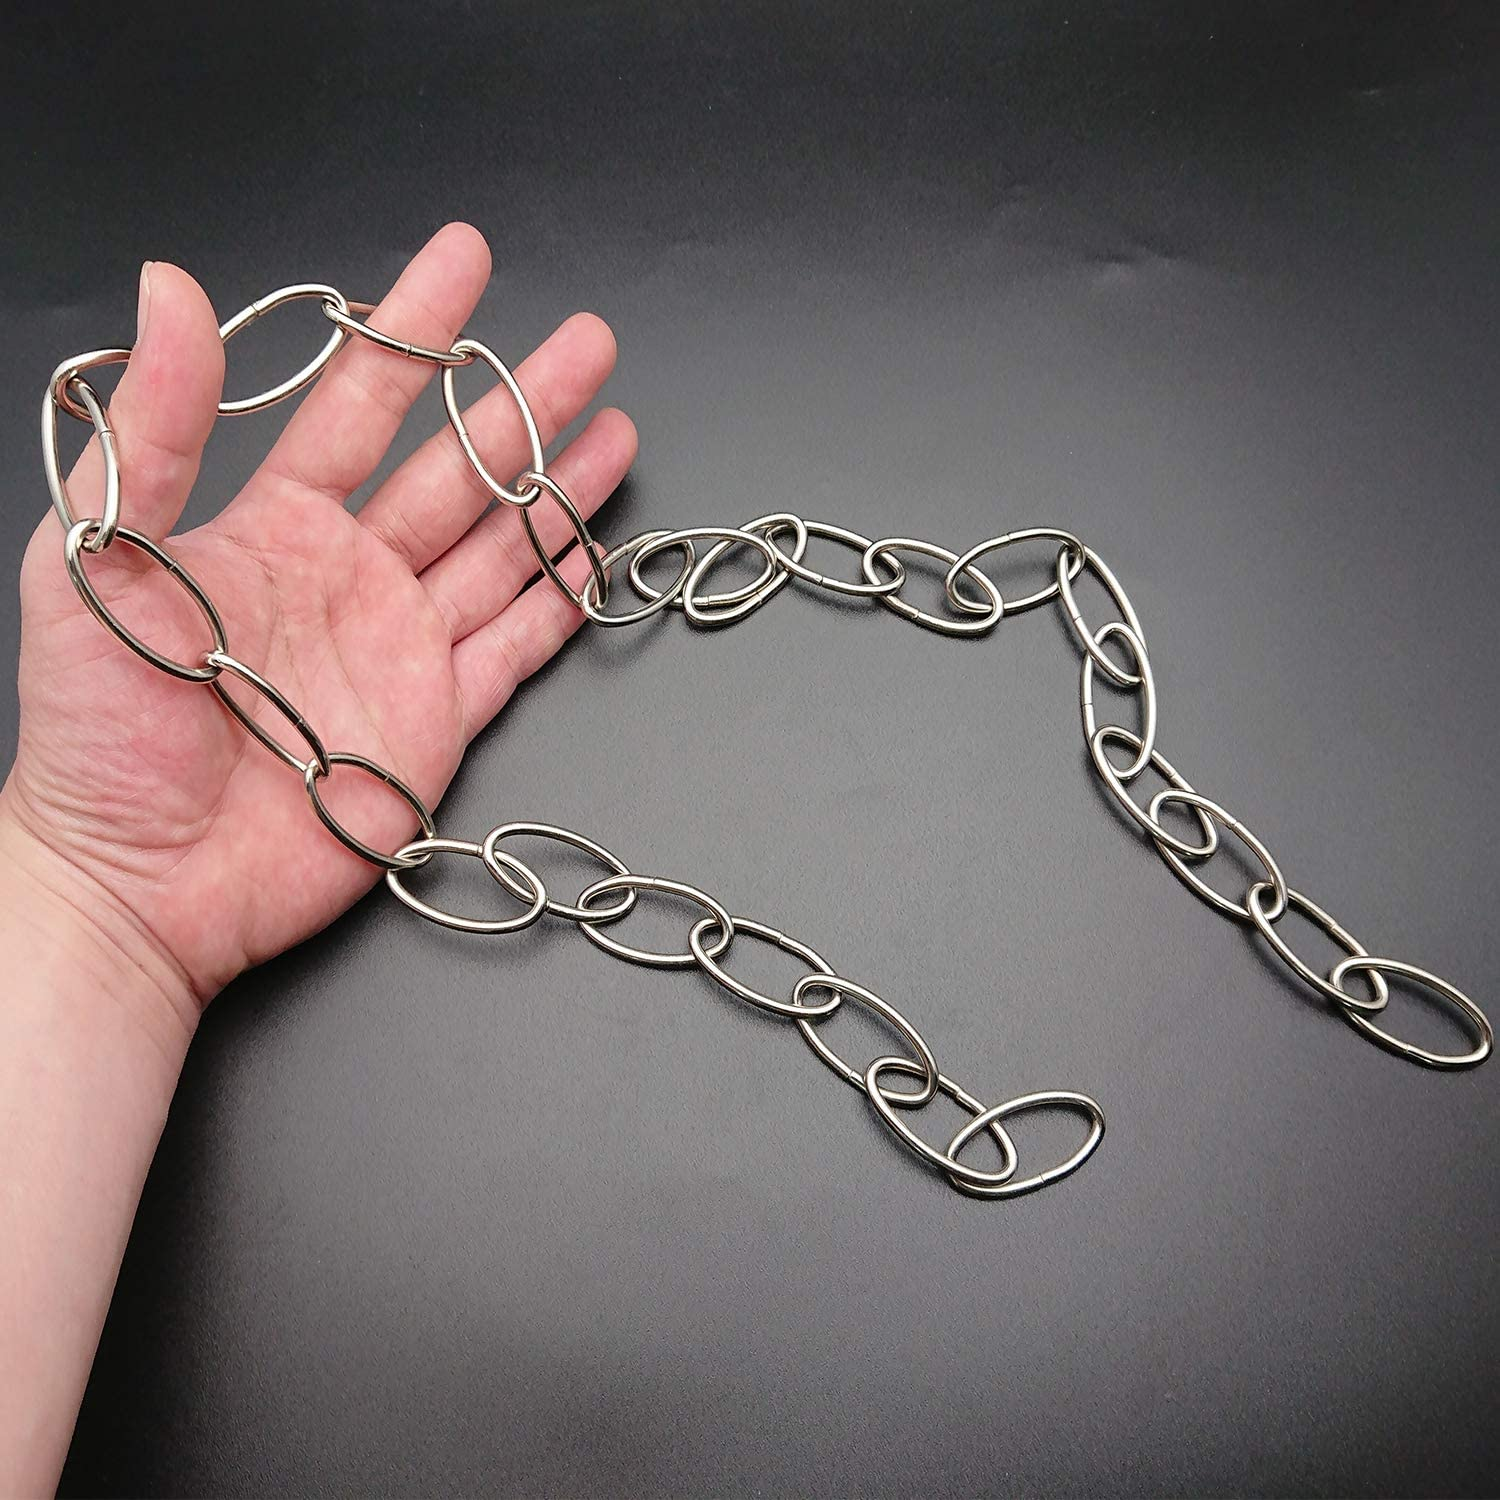 Nickel Plated Chain Extension Goiio 36 inches Long Decorator Chain Fixture Chain